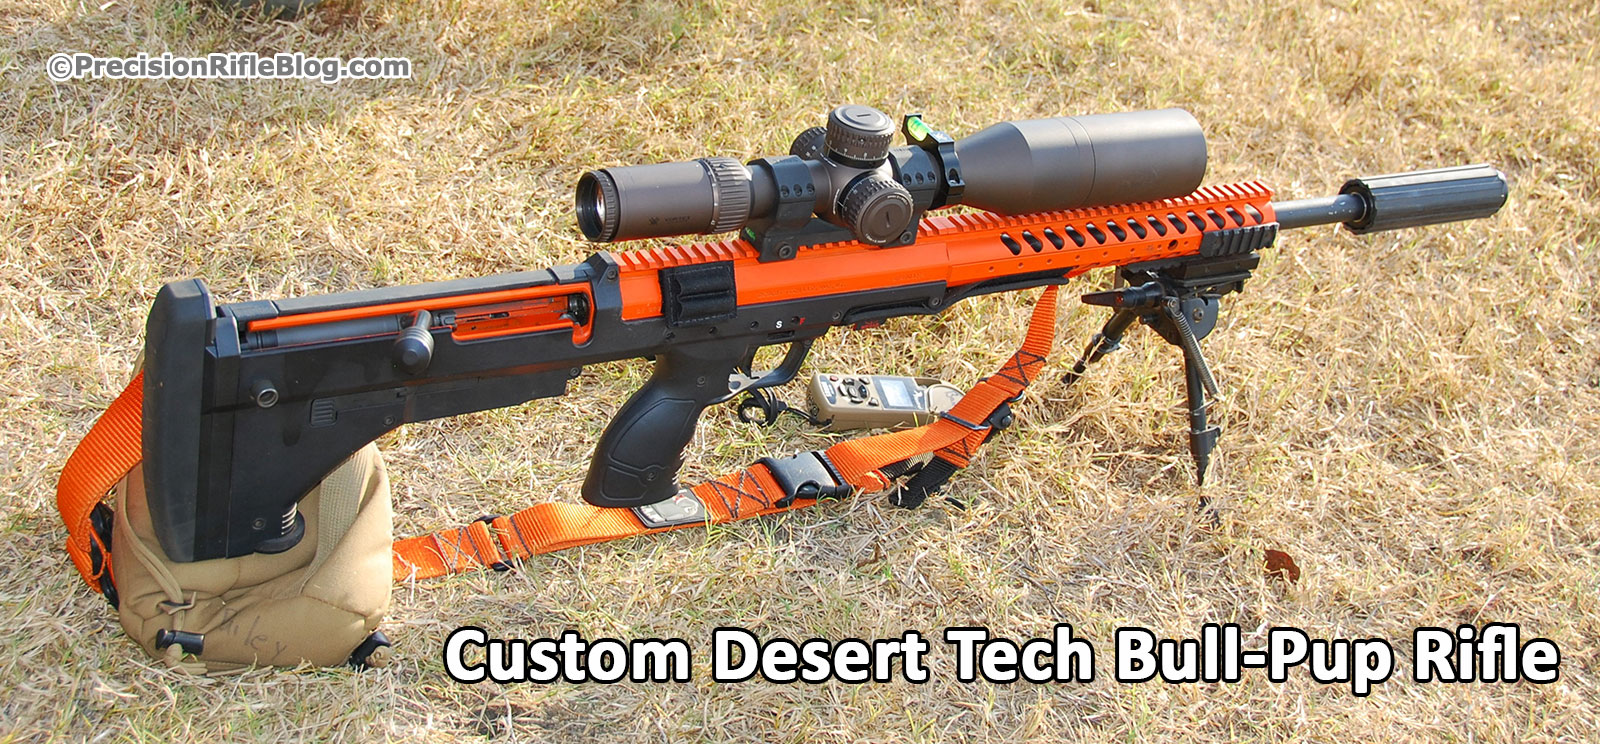 Custom Desert Tech Bull-Pup Rifle